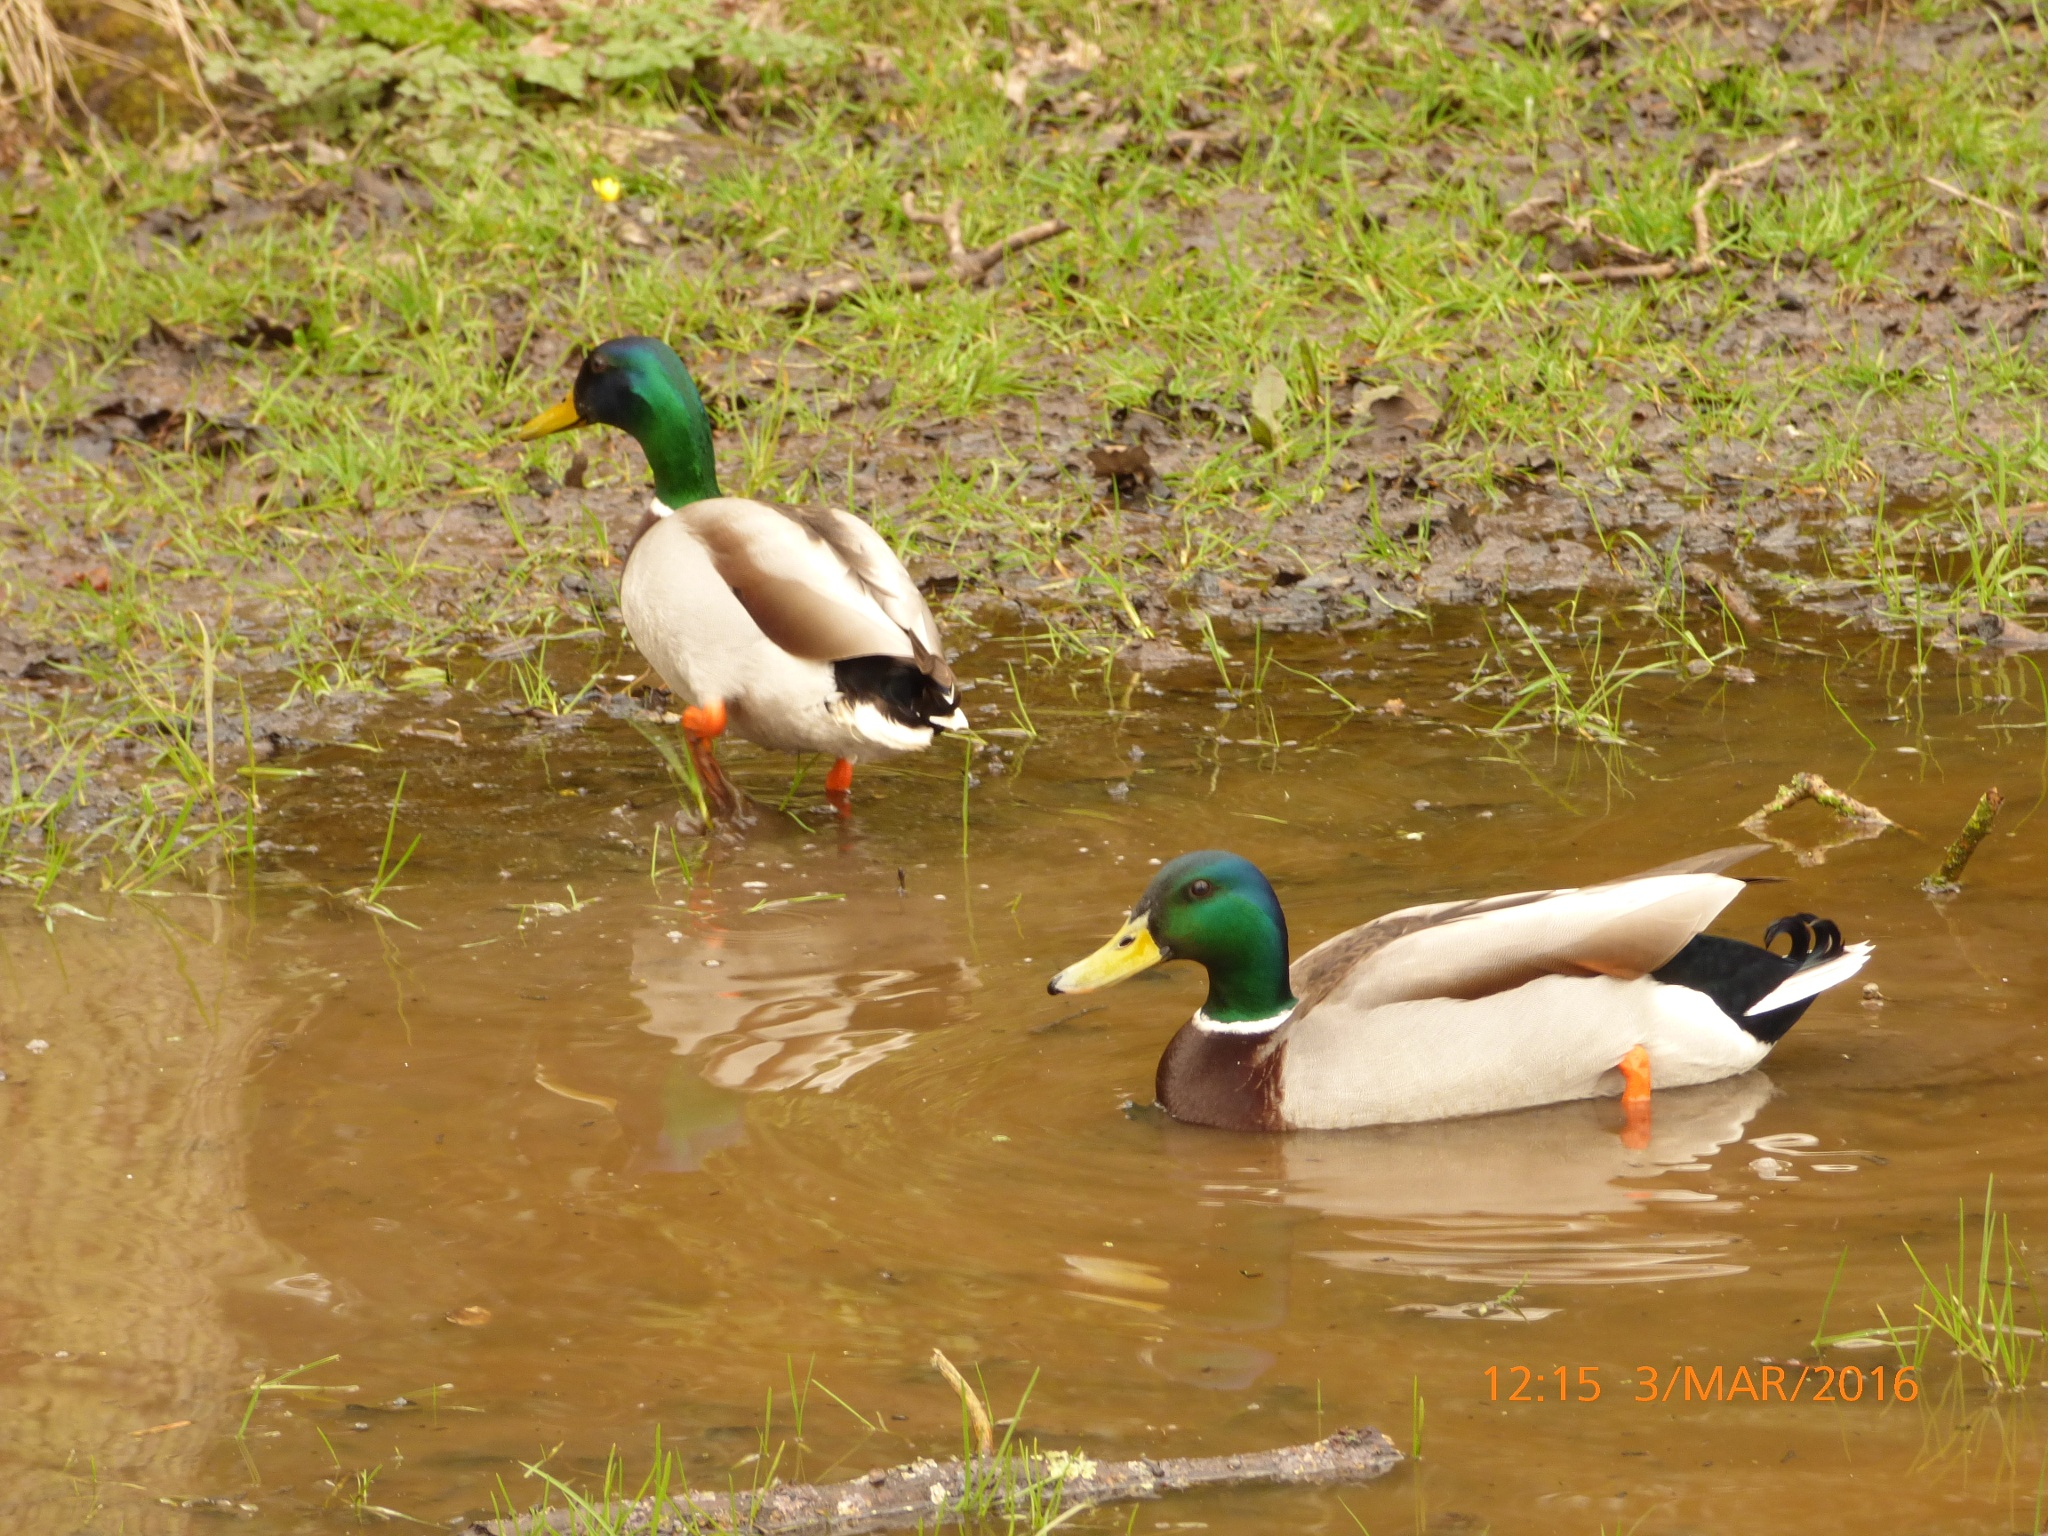 2 ducks having a nice day  by chinaclowns2